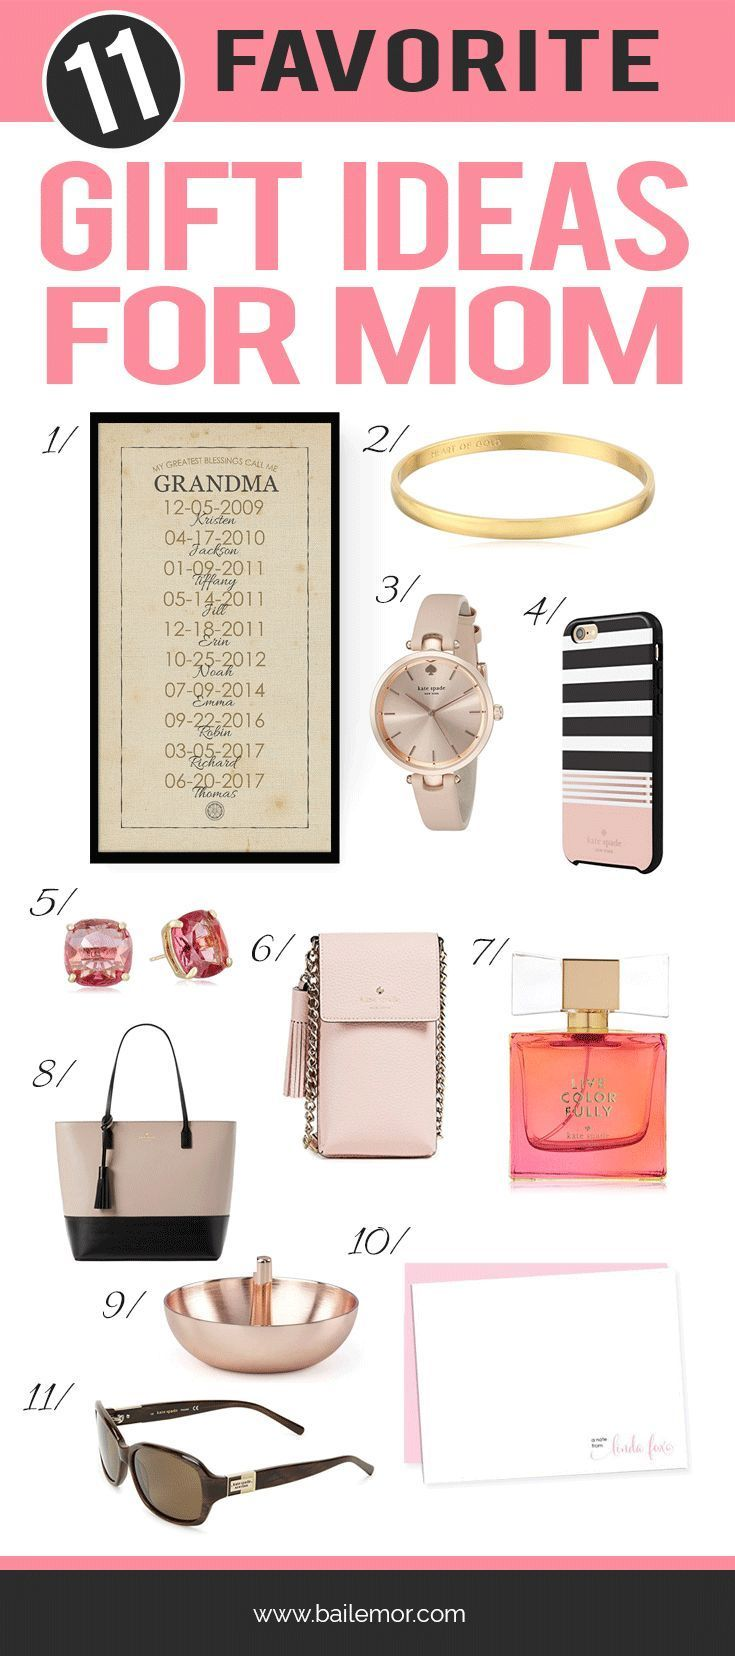 valentine's day gifts for mom from daughter diy